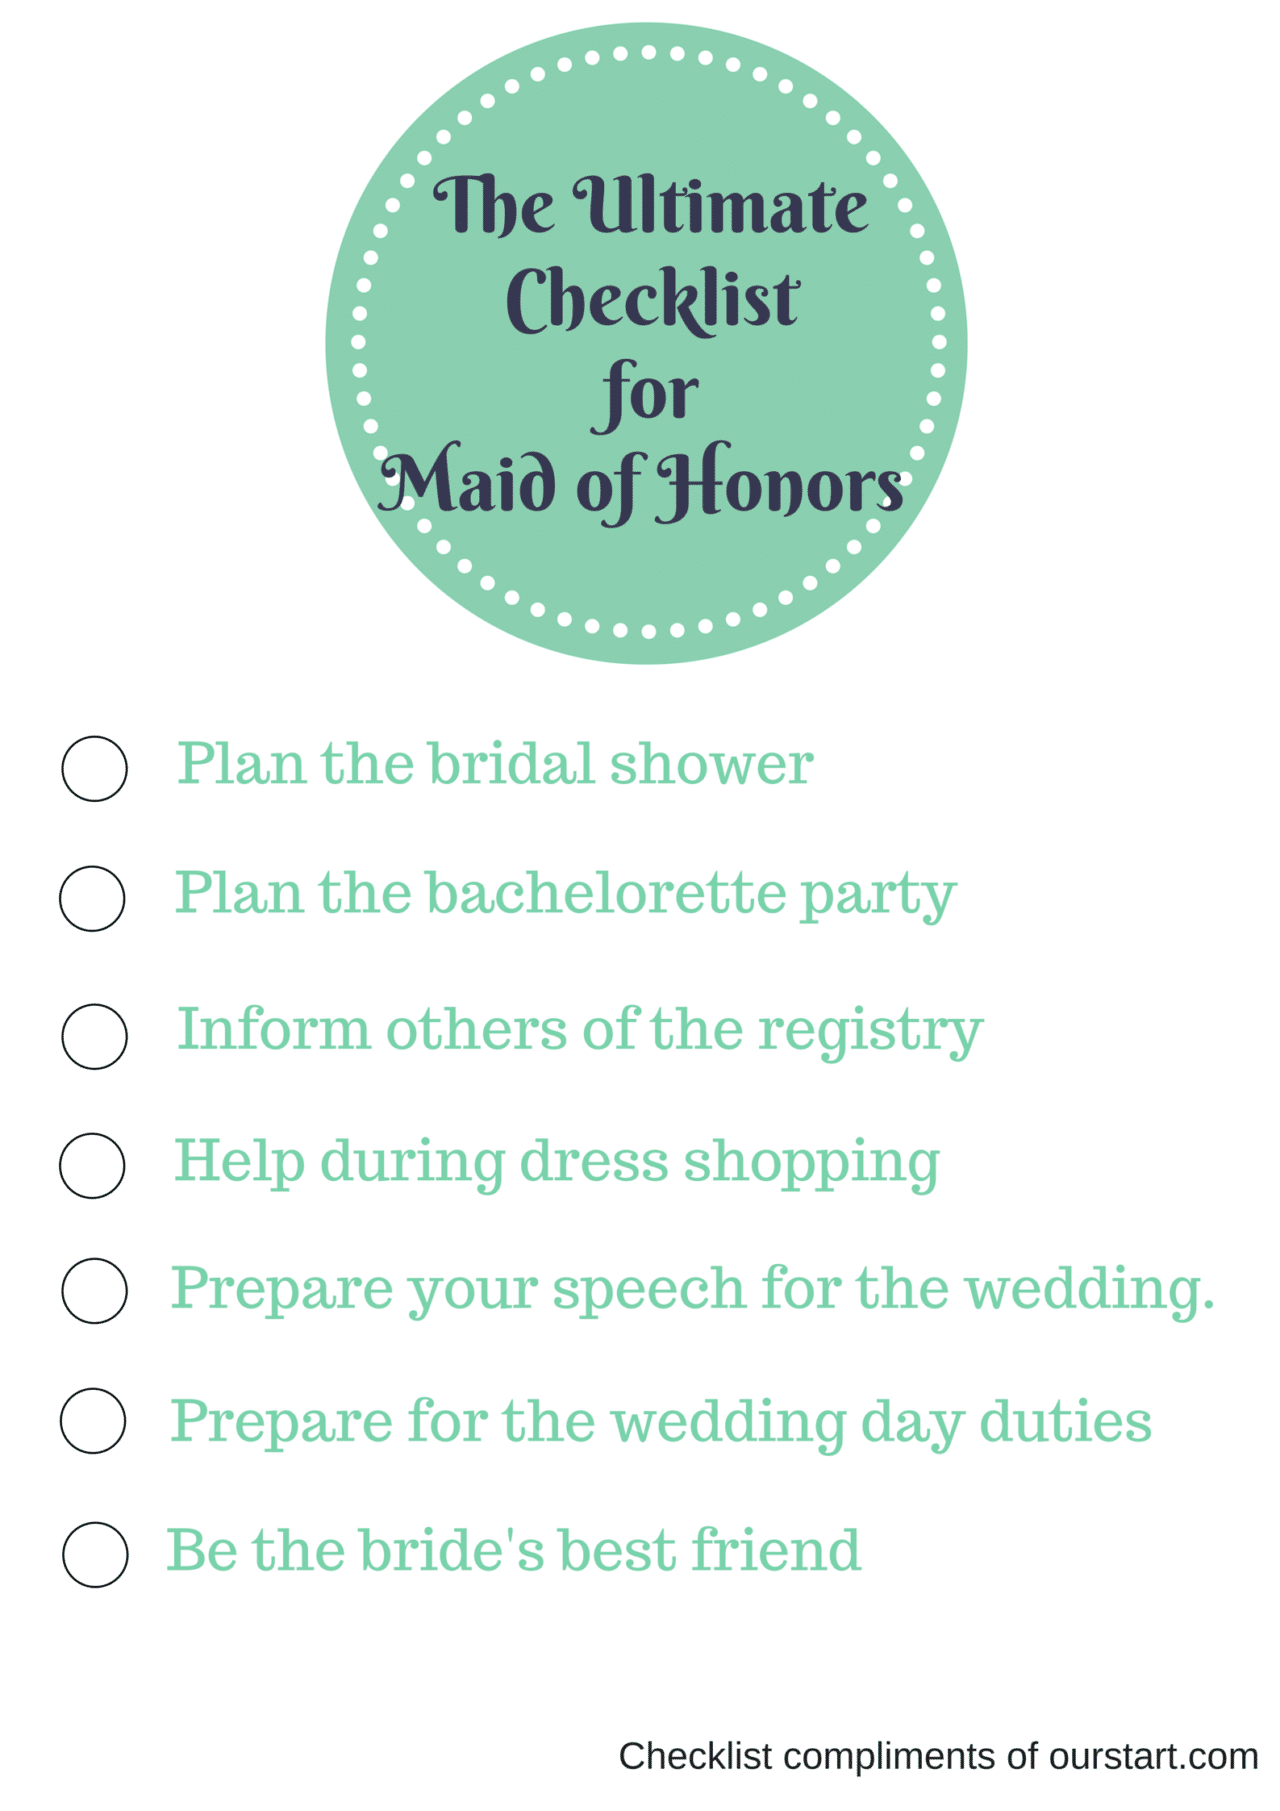 The Ultimate Checklist for the Anxious Maid of Honor